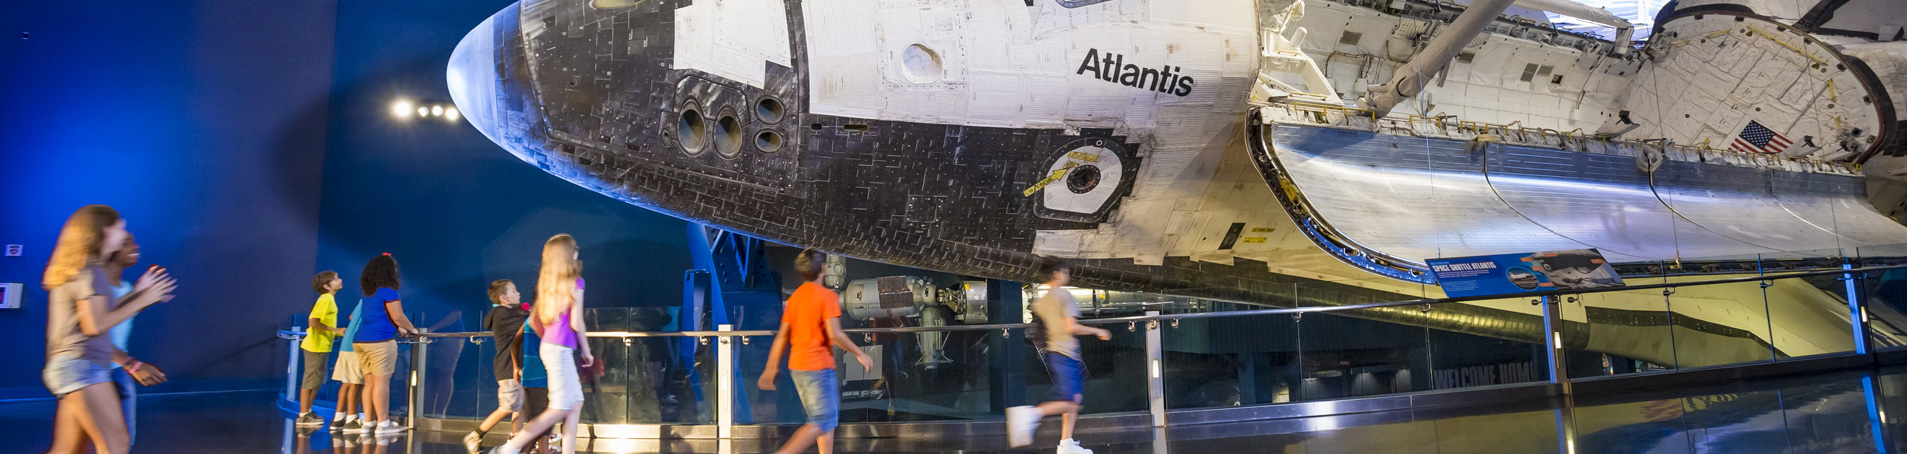 Children at Space Shuttle Atlantis exhibit